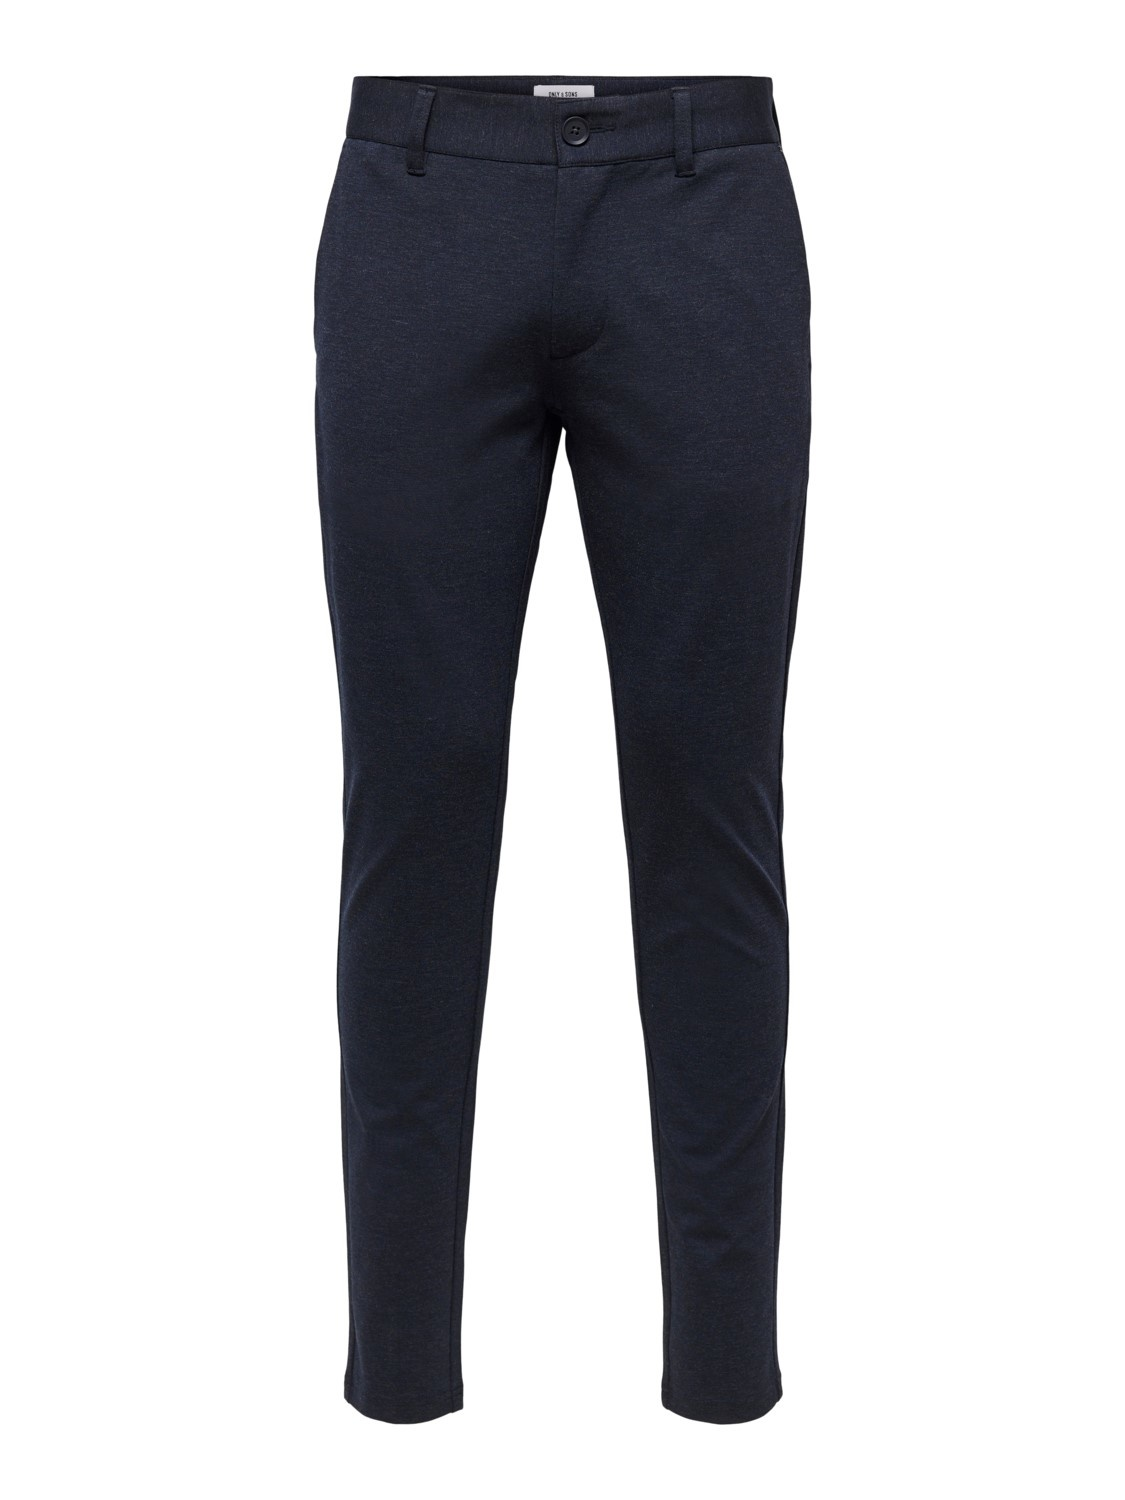 Only & Sons Ons Mark Tap Pant Melange 5833 Noos